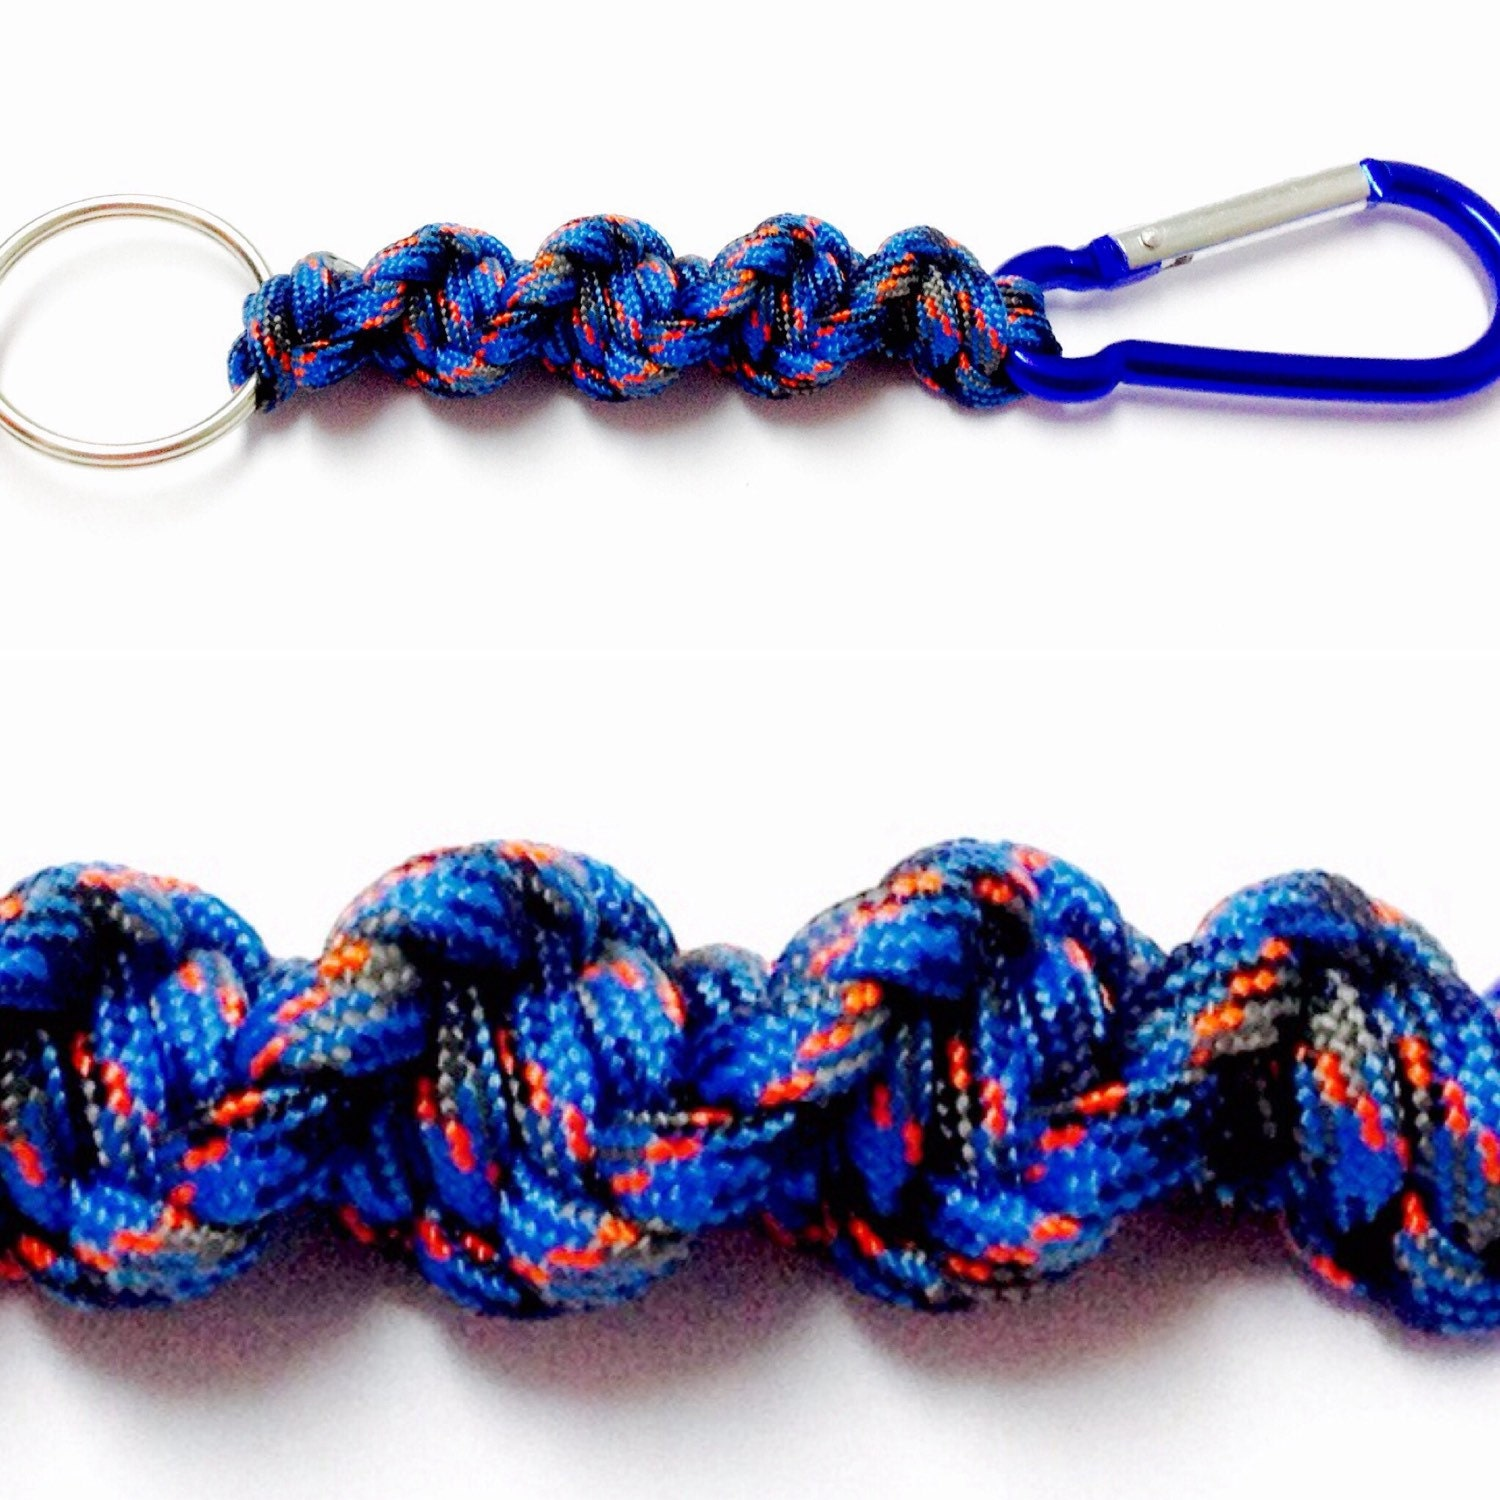 Blue camo keychain paracord keychain carabiner keychain for How to make a keychain out of paracord